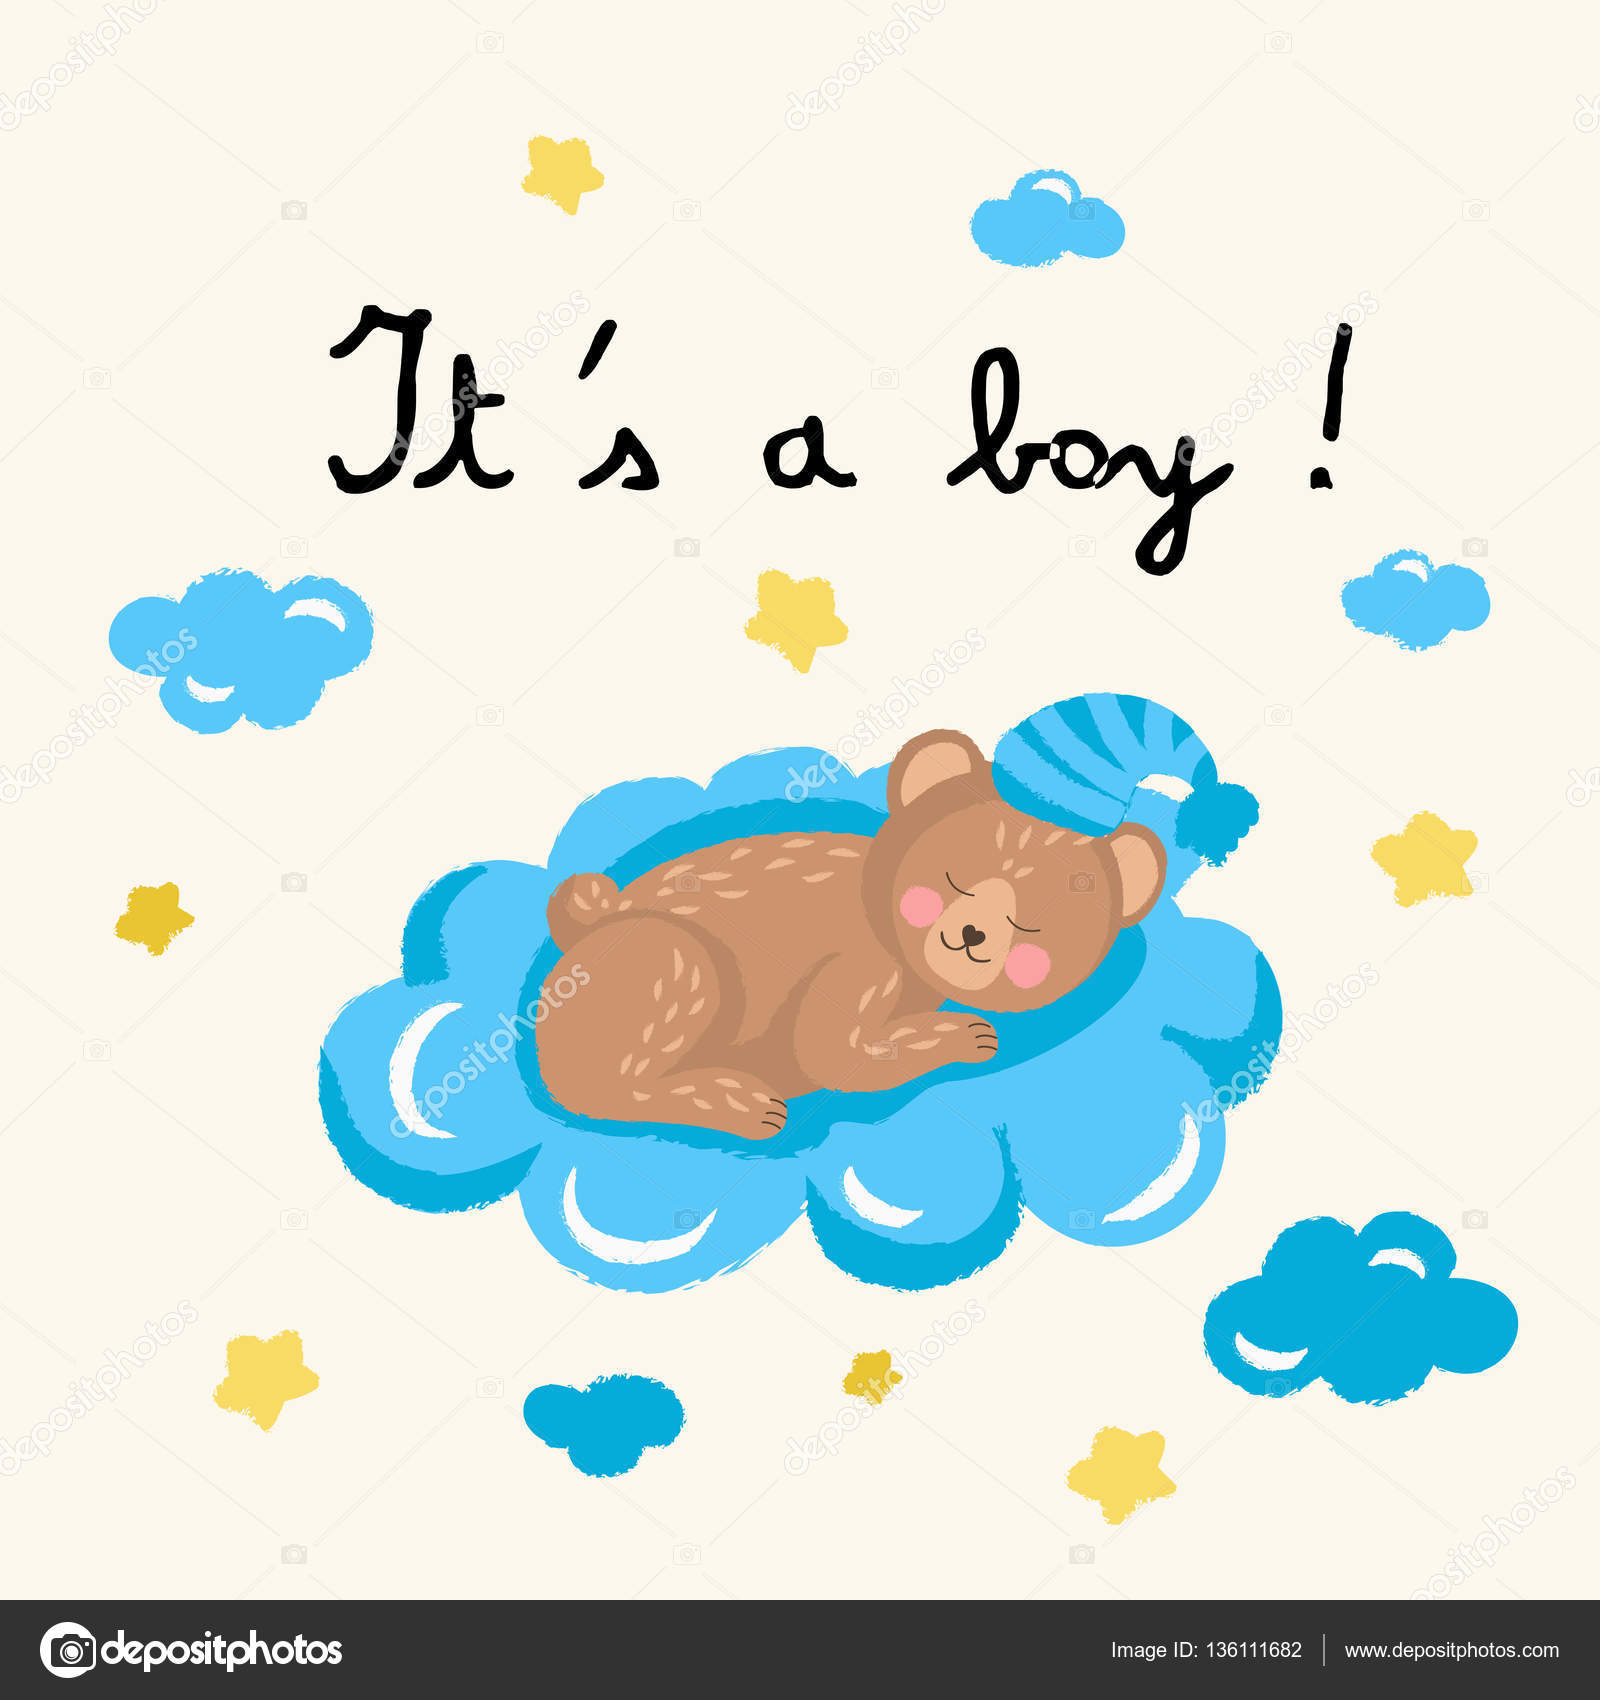 Cute sleeping bear on the cloud vector illustration Baby shower